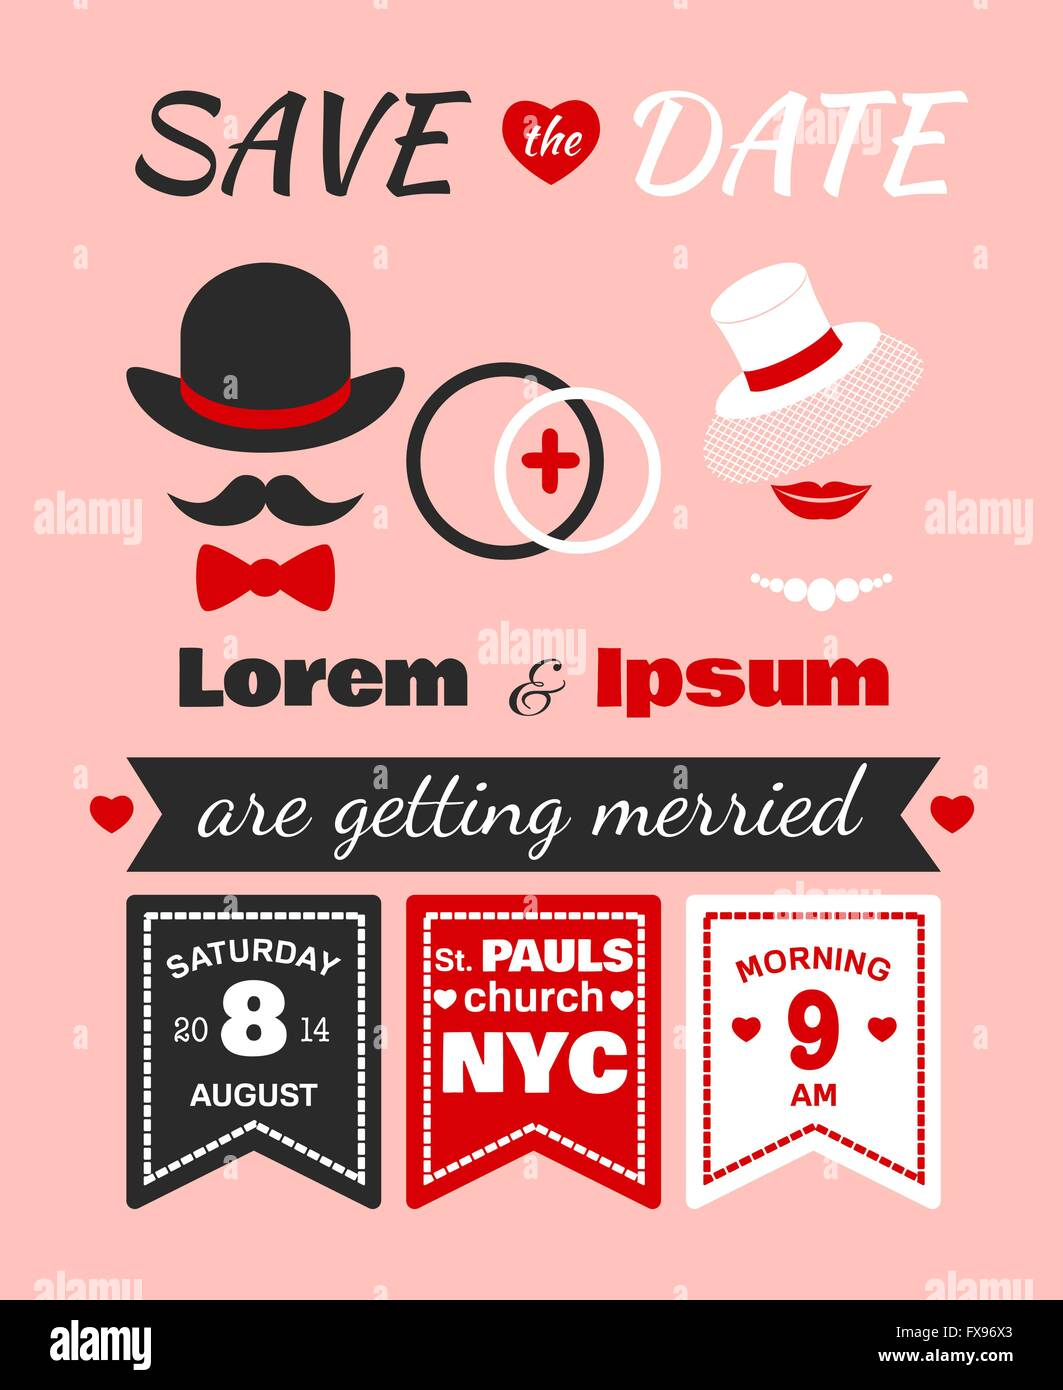 Hipster wedding invitation card Stock Vector Art & Illustration ...